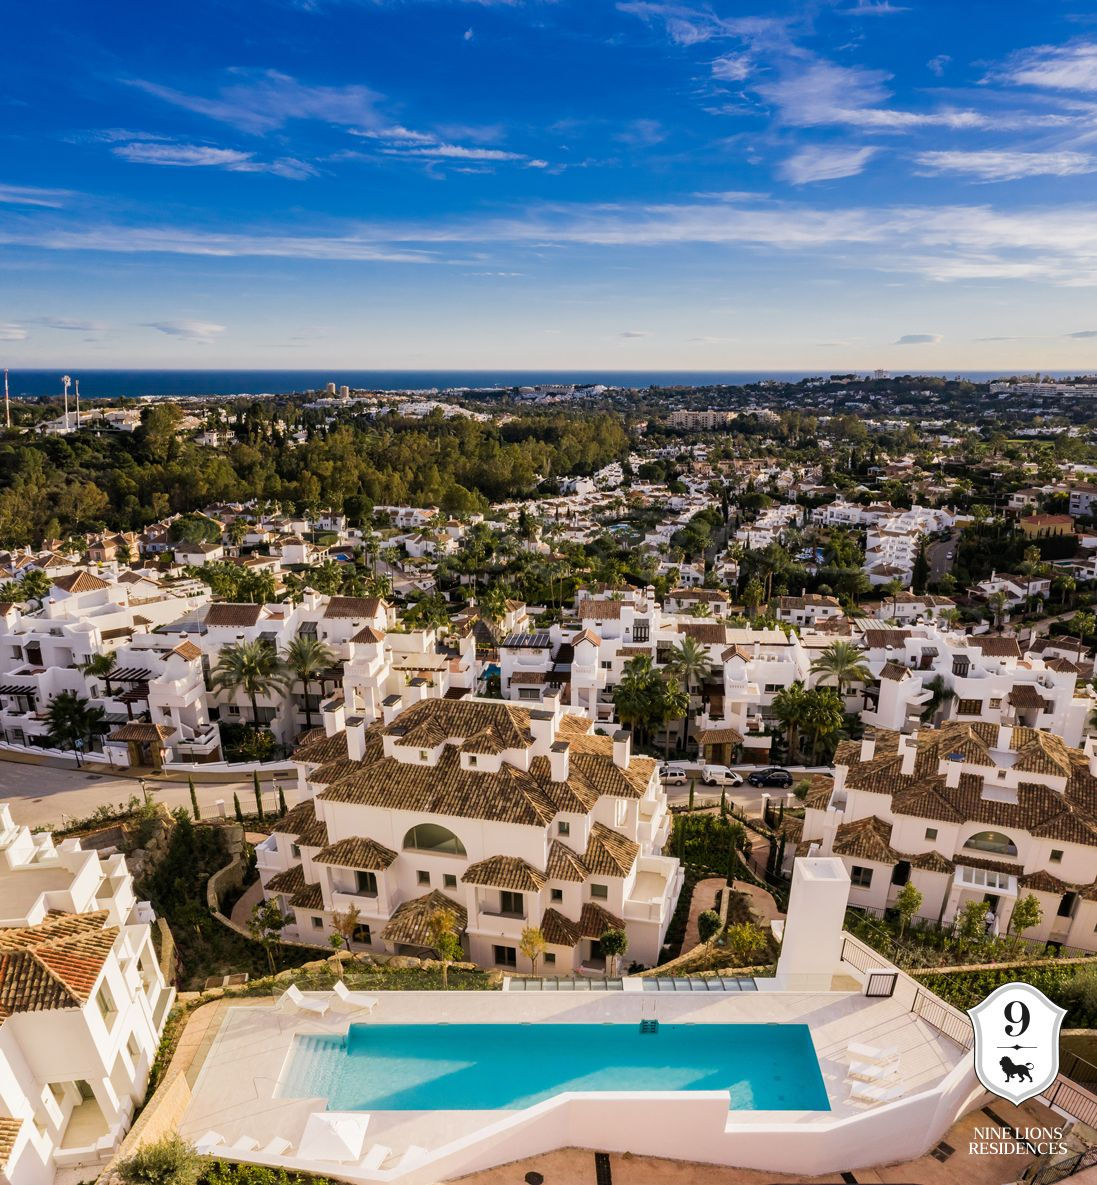 Brand new apartment in the Golf Valley, Marbella